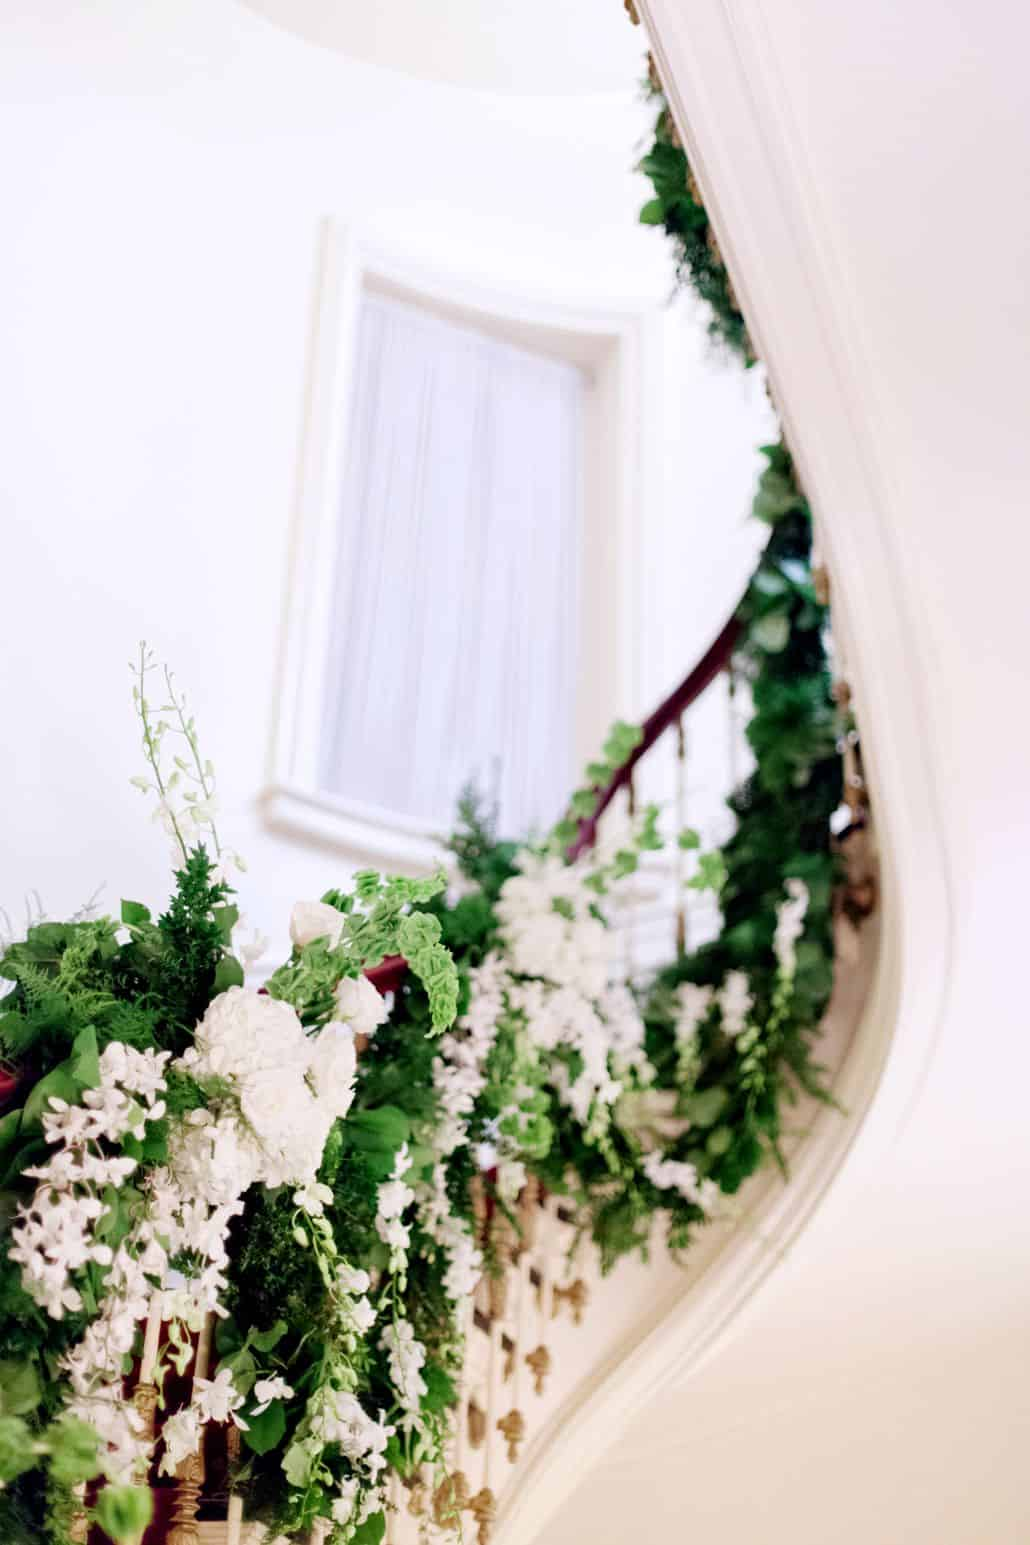 white and green floral arrangement up winding staircase railing ...